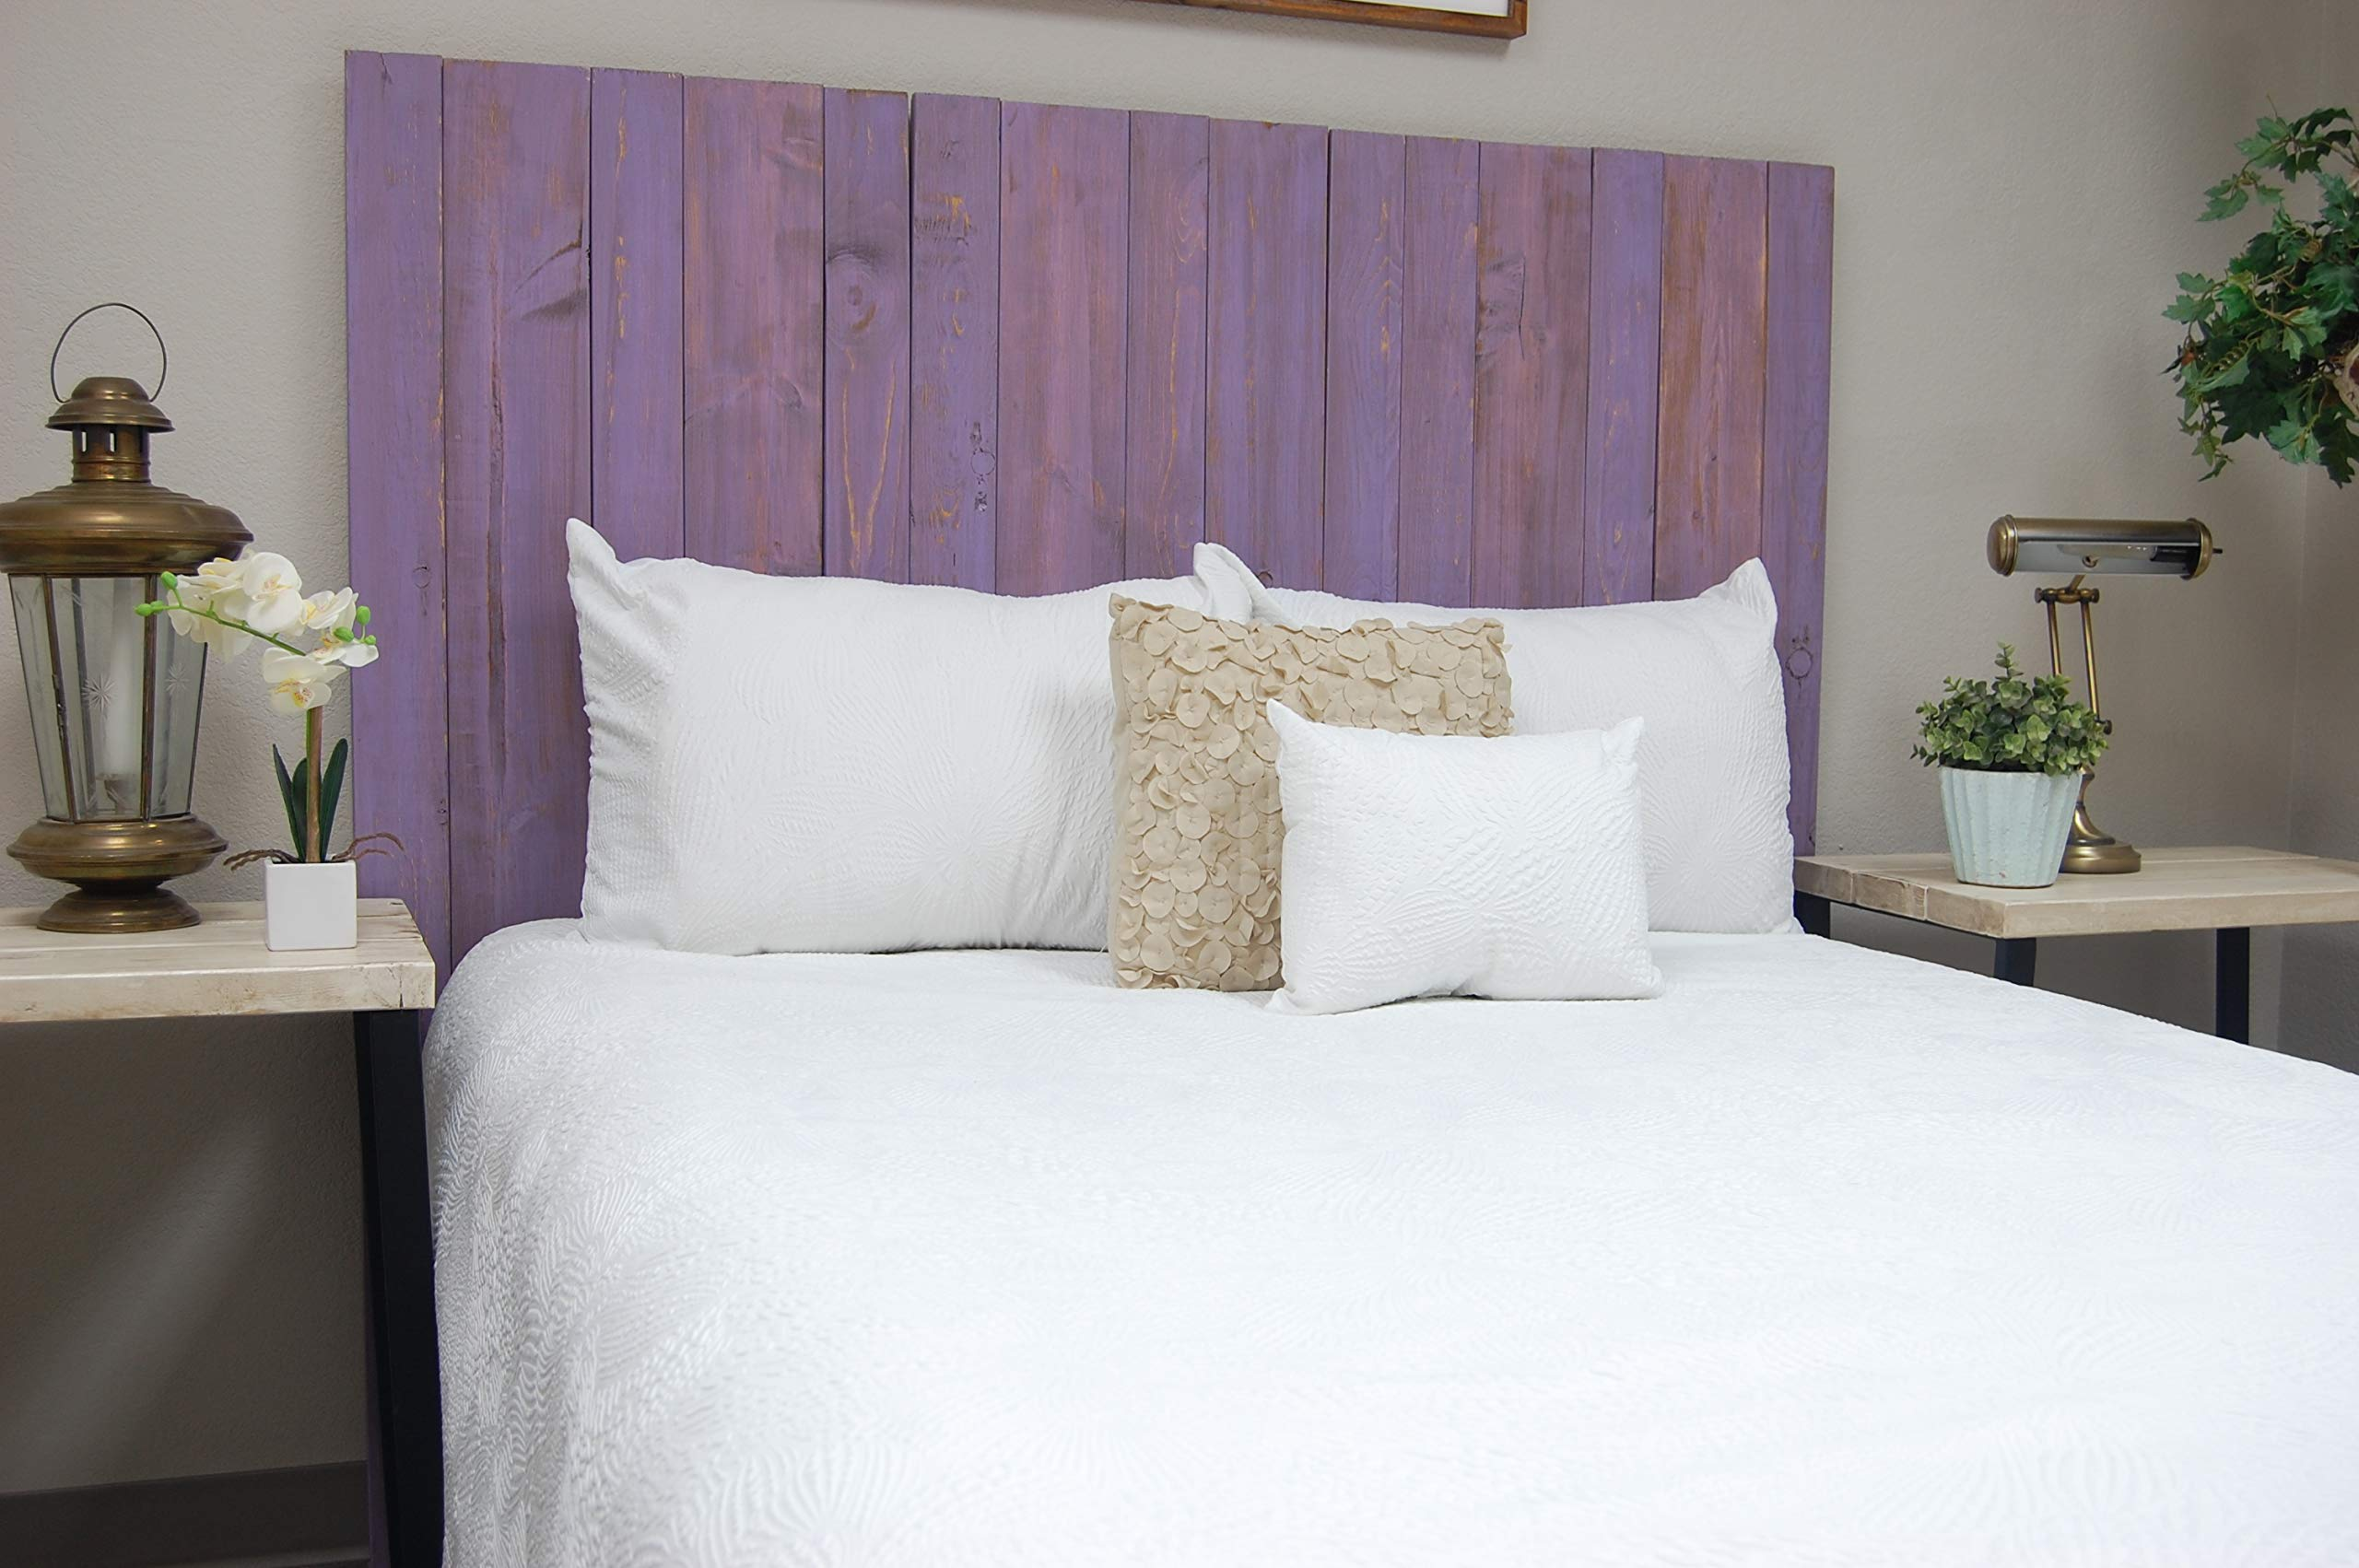 Lavender Headboard Weathered King Size, Hanger Style, Handcrafted. Mounts on Wall. Easy Installation